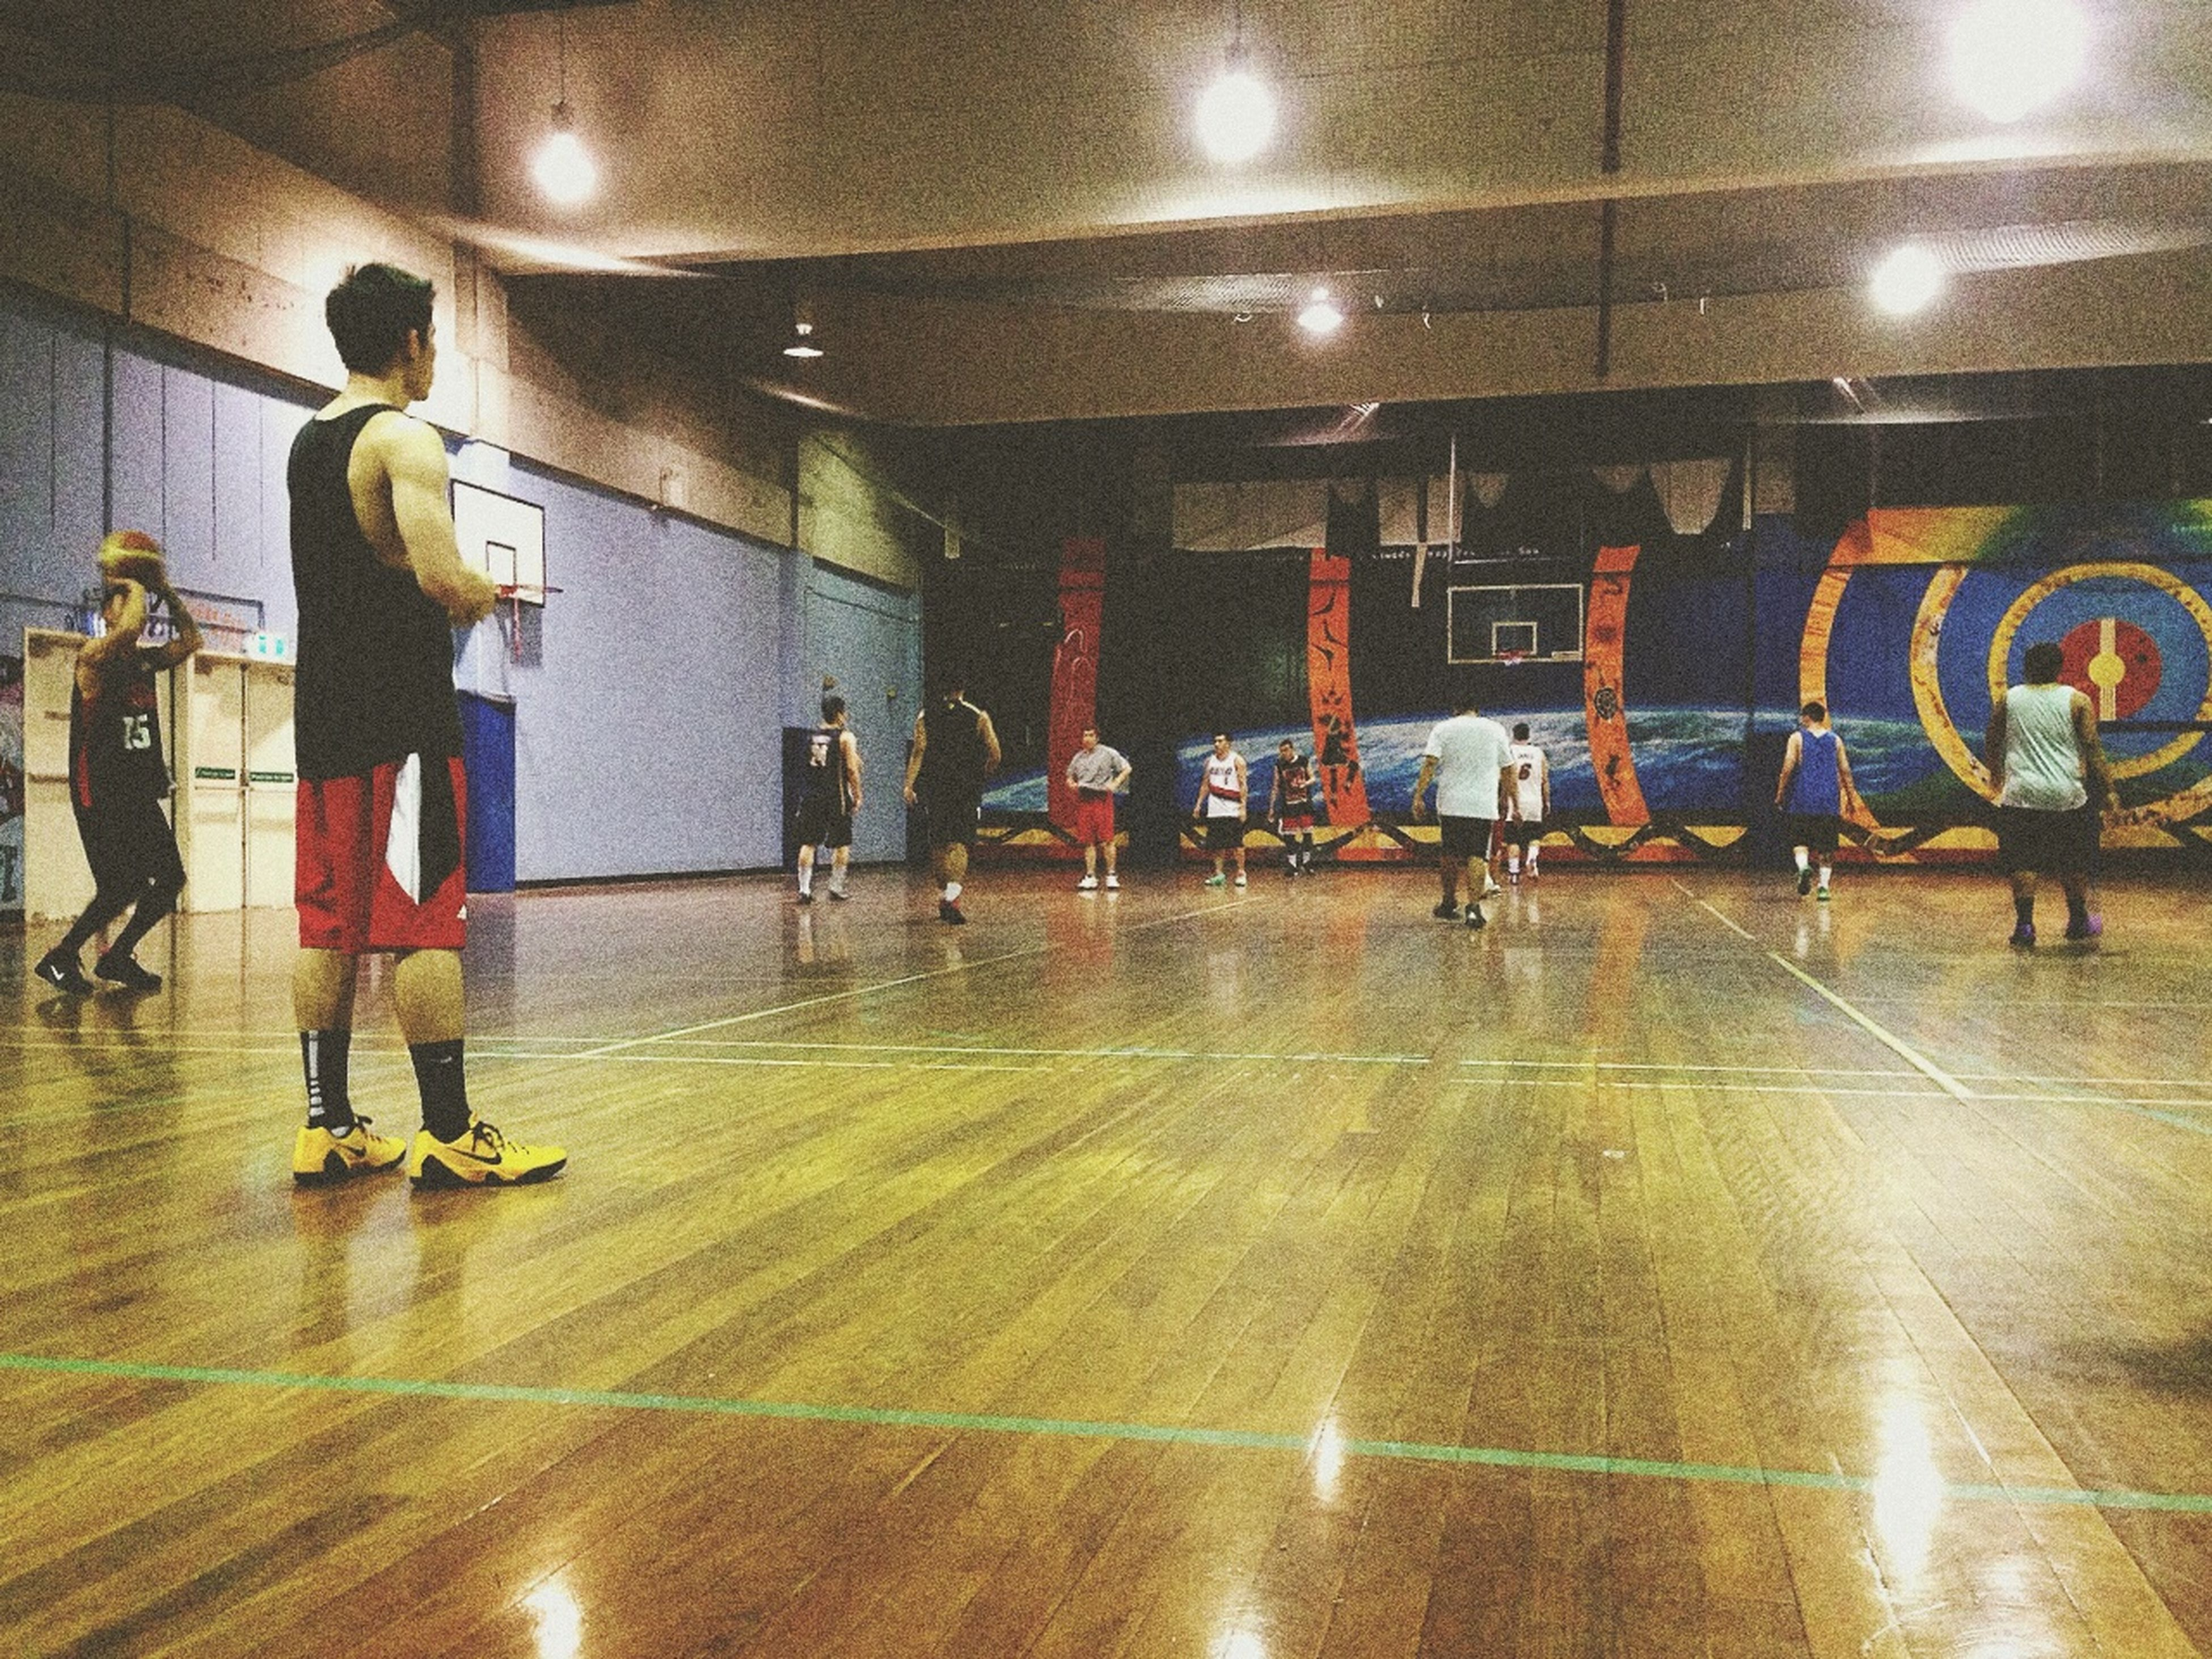 Happy time with Bball & friends. Basketball FreeTime Happiness Friendship Court Kobe9 Brucelee Thaisinsydney Relaxing Workout